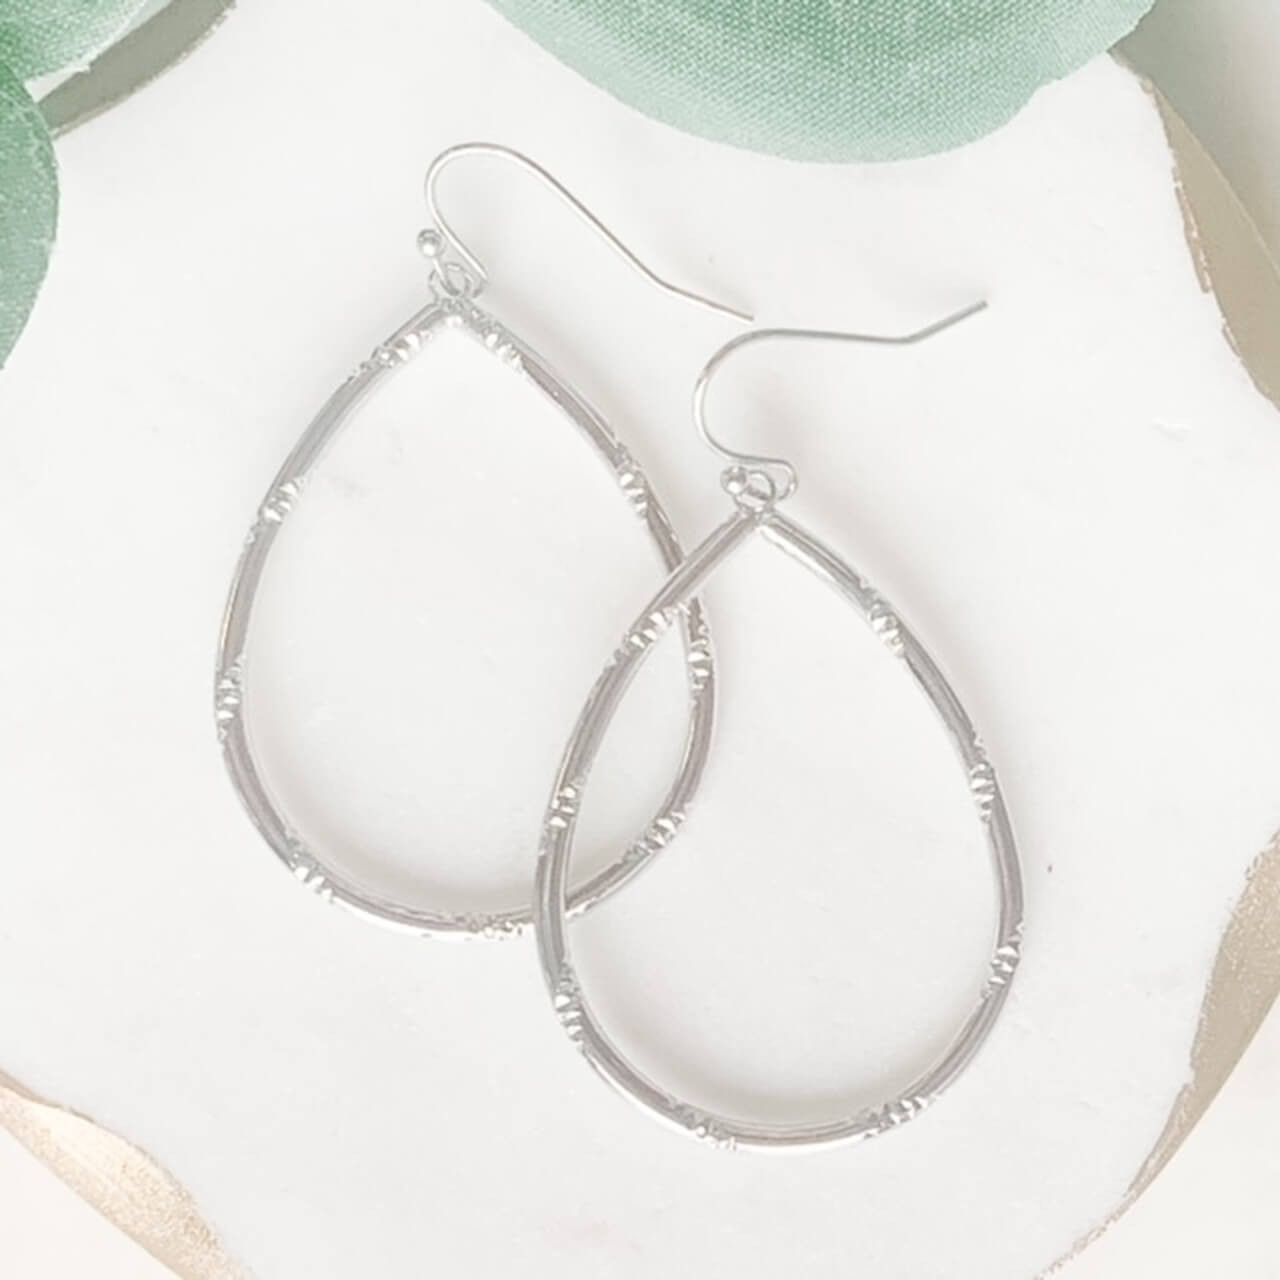 """Shiny silver teardrop shaped earrings with diamond-cut texture wrapping diagonally around the hoop. 2""""; hook back; nickel and lead free."""